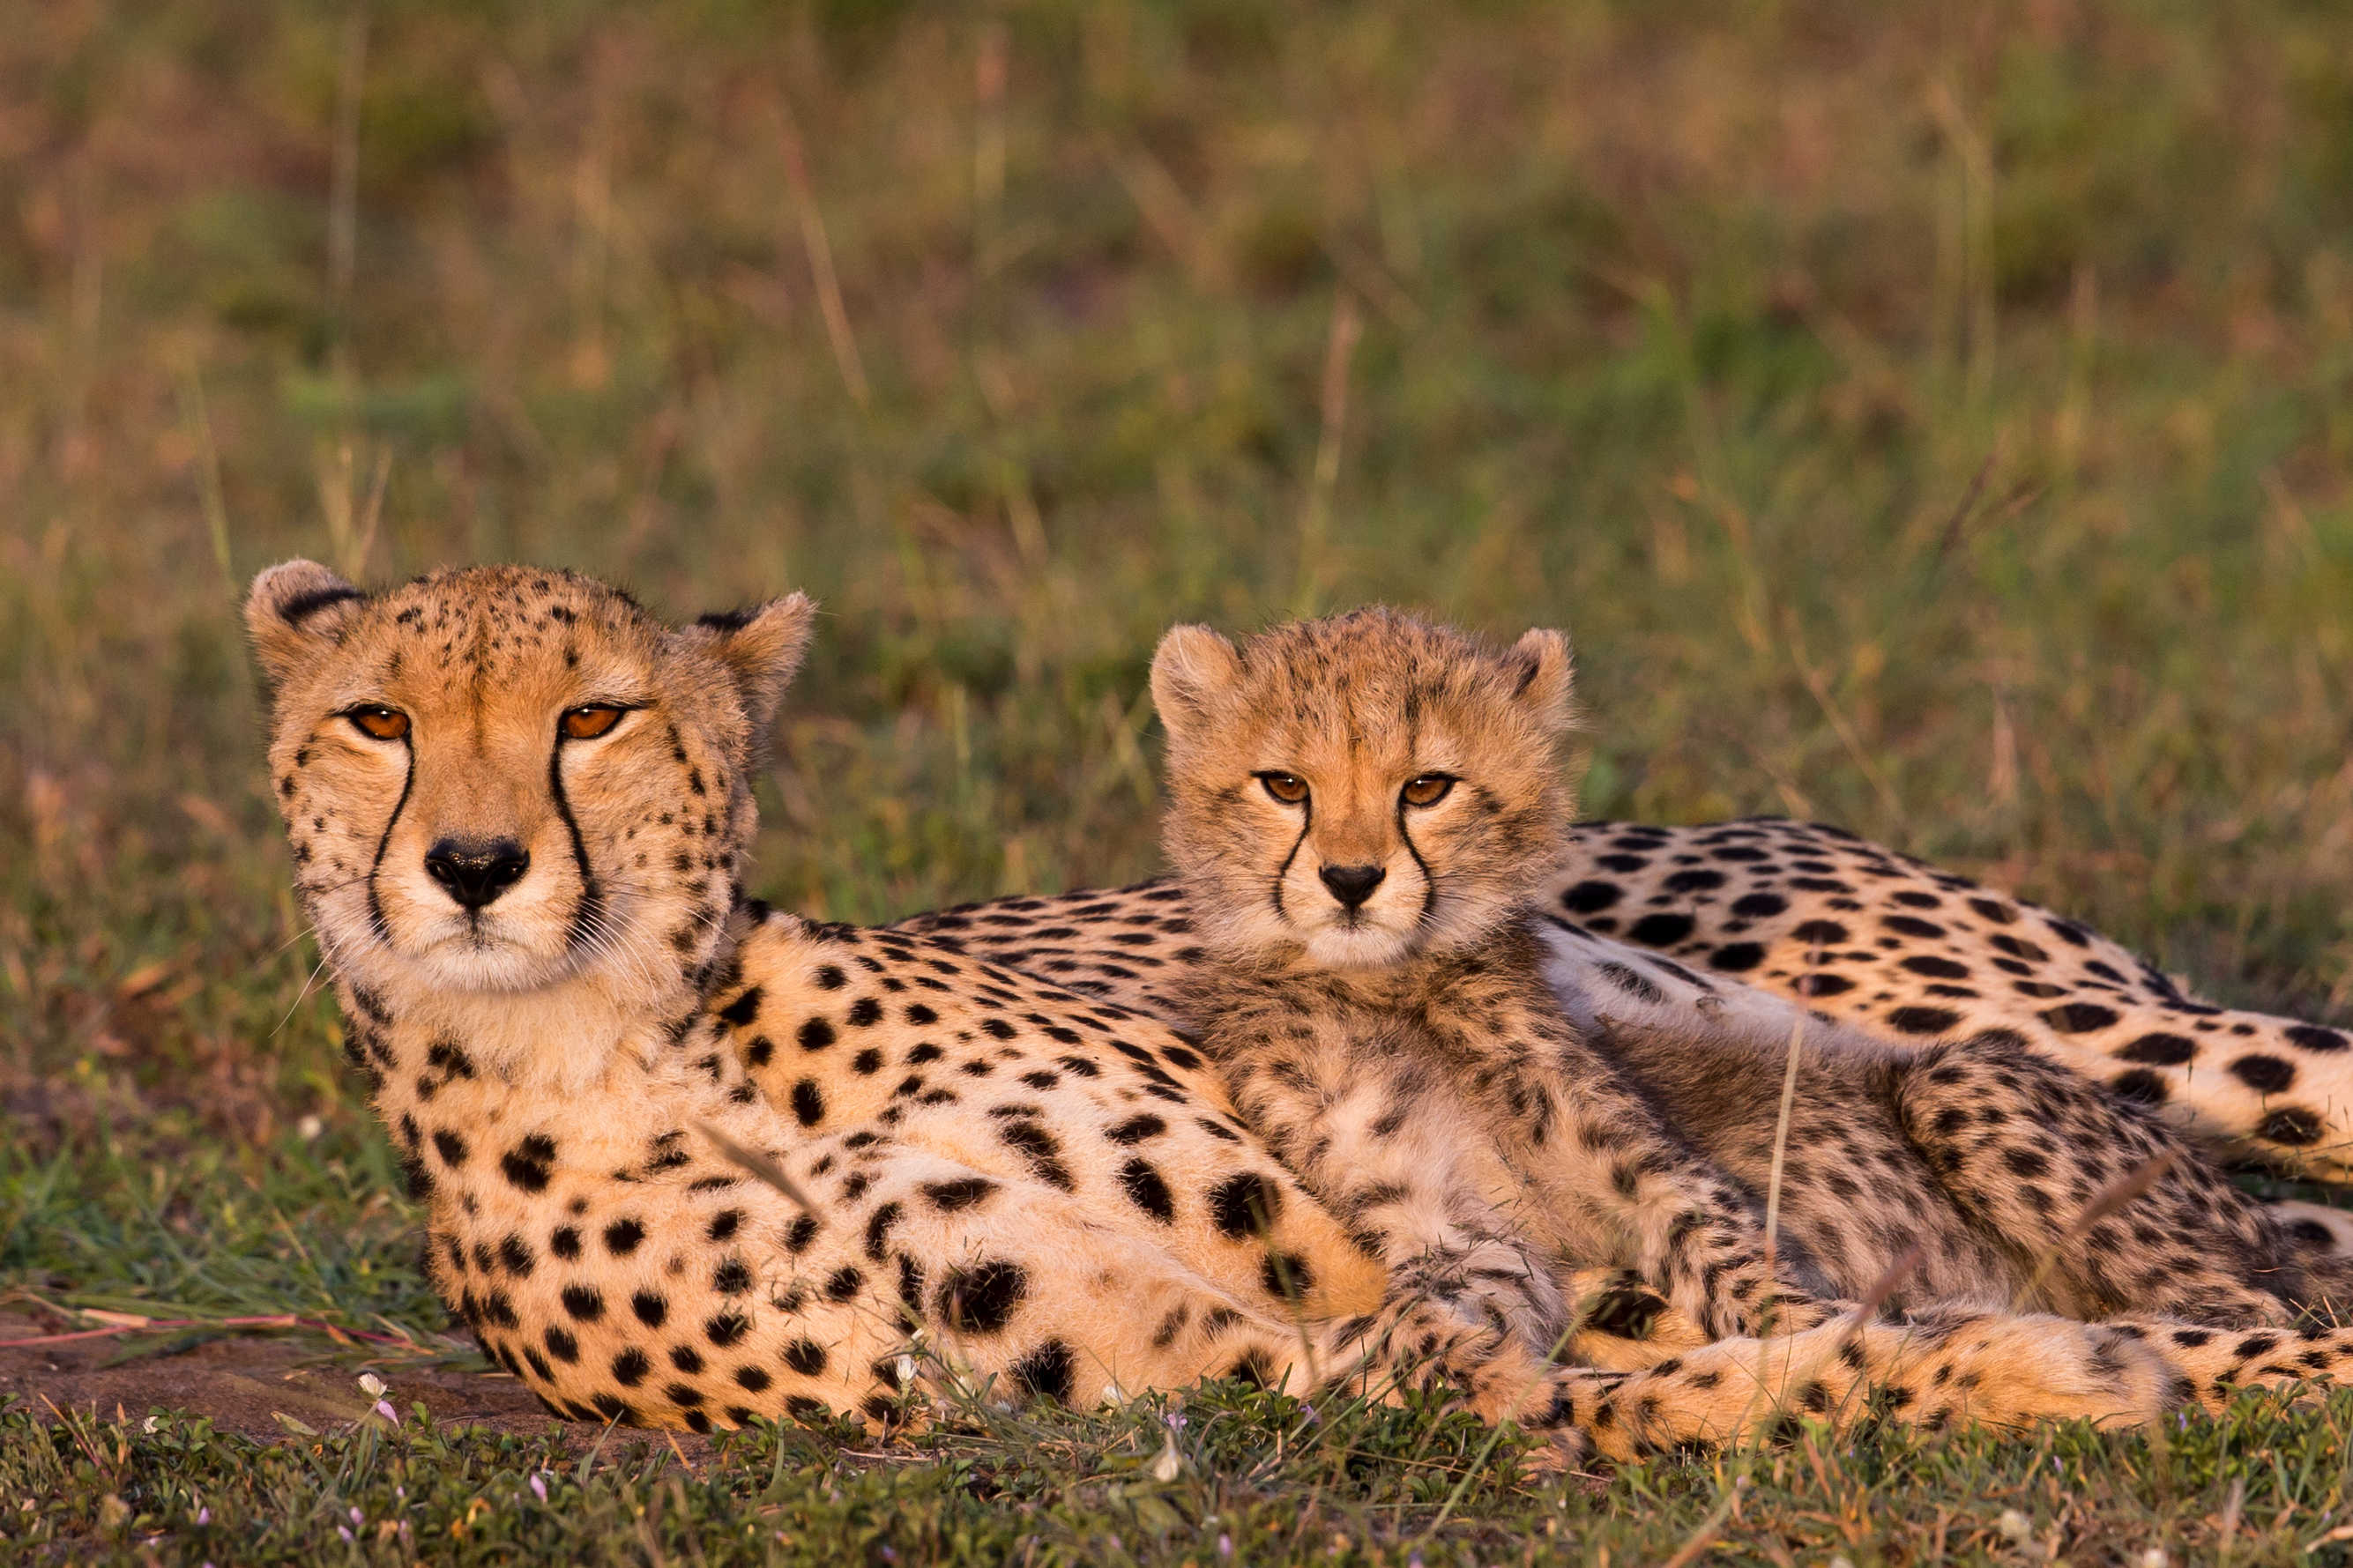 Cheetah family in the Masai Mara (Image by Paul Goldstein)